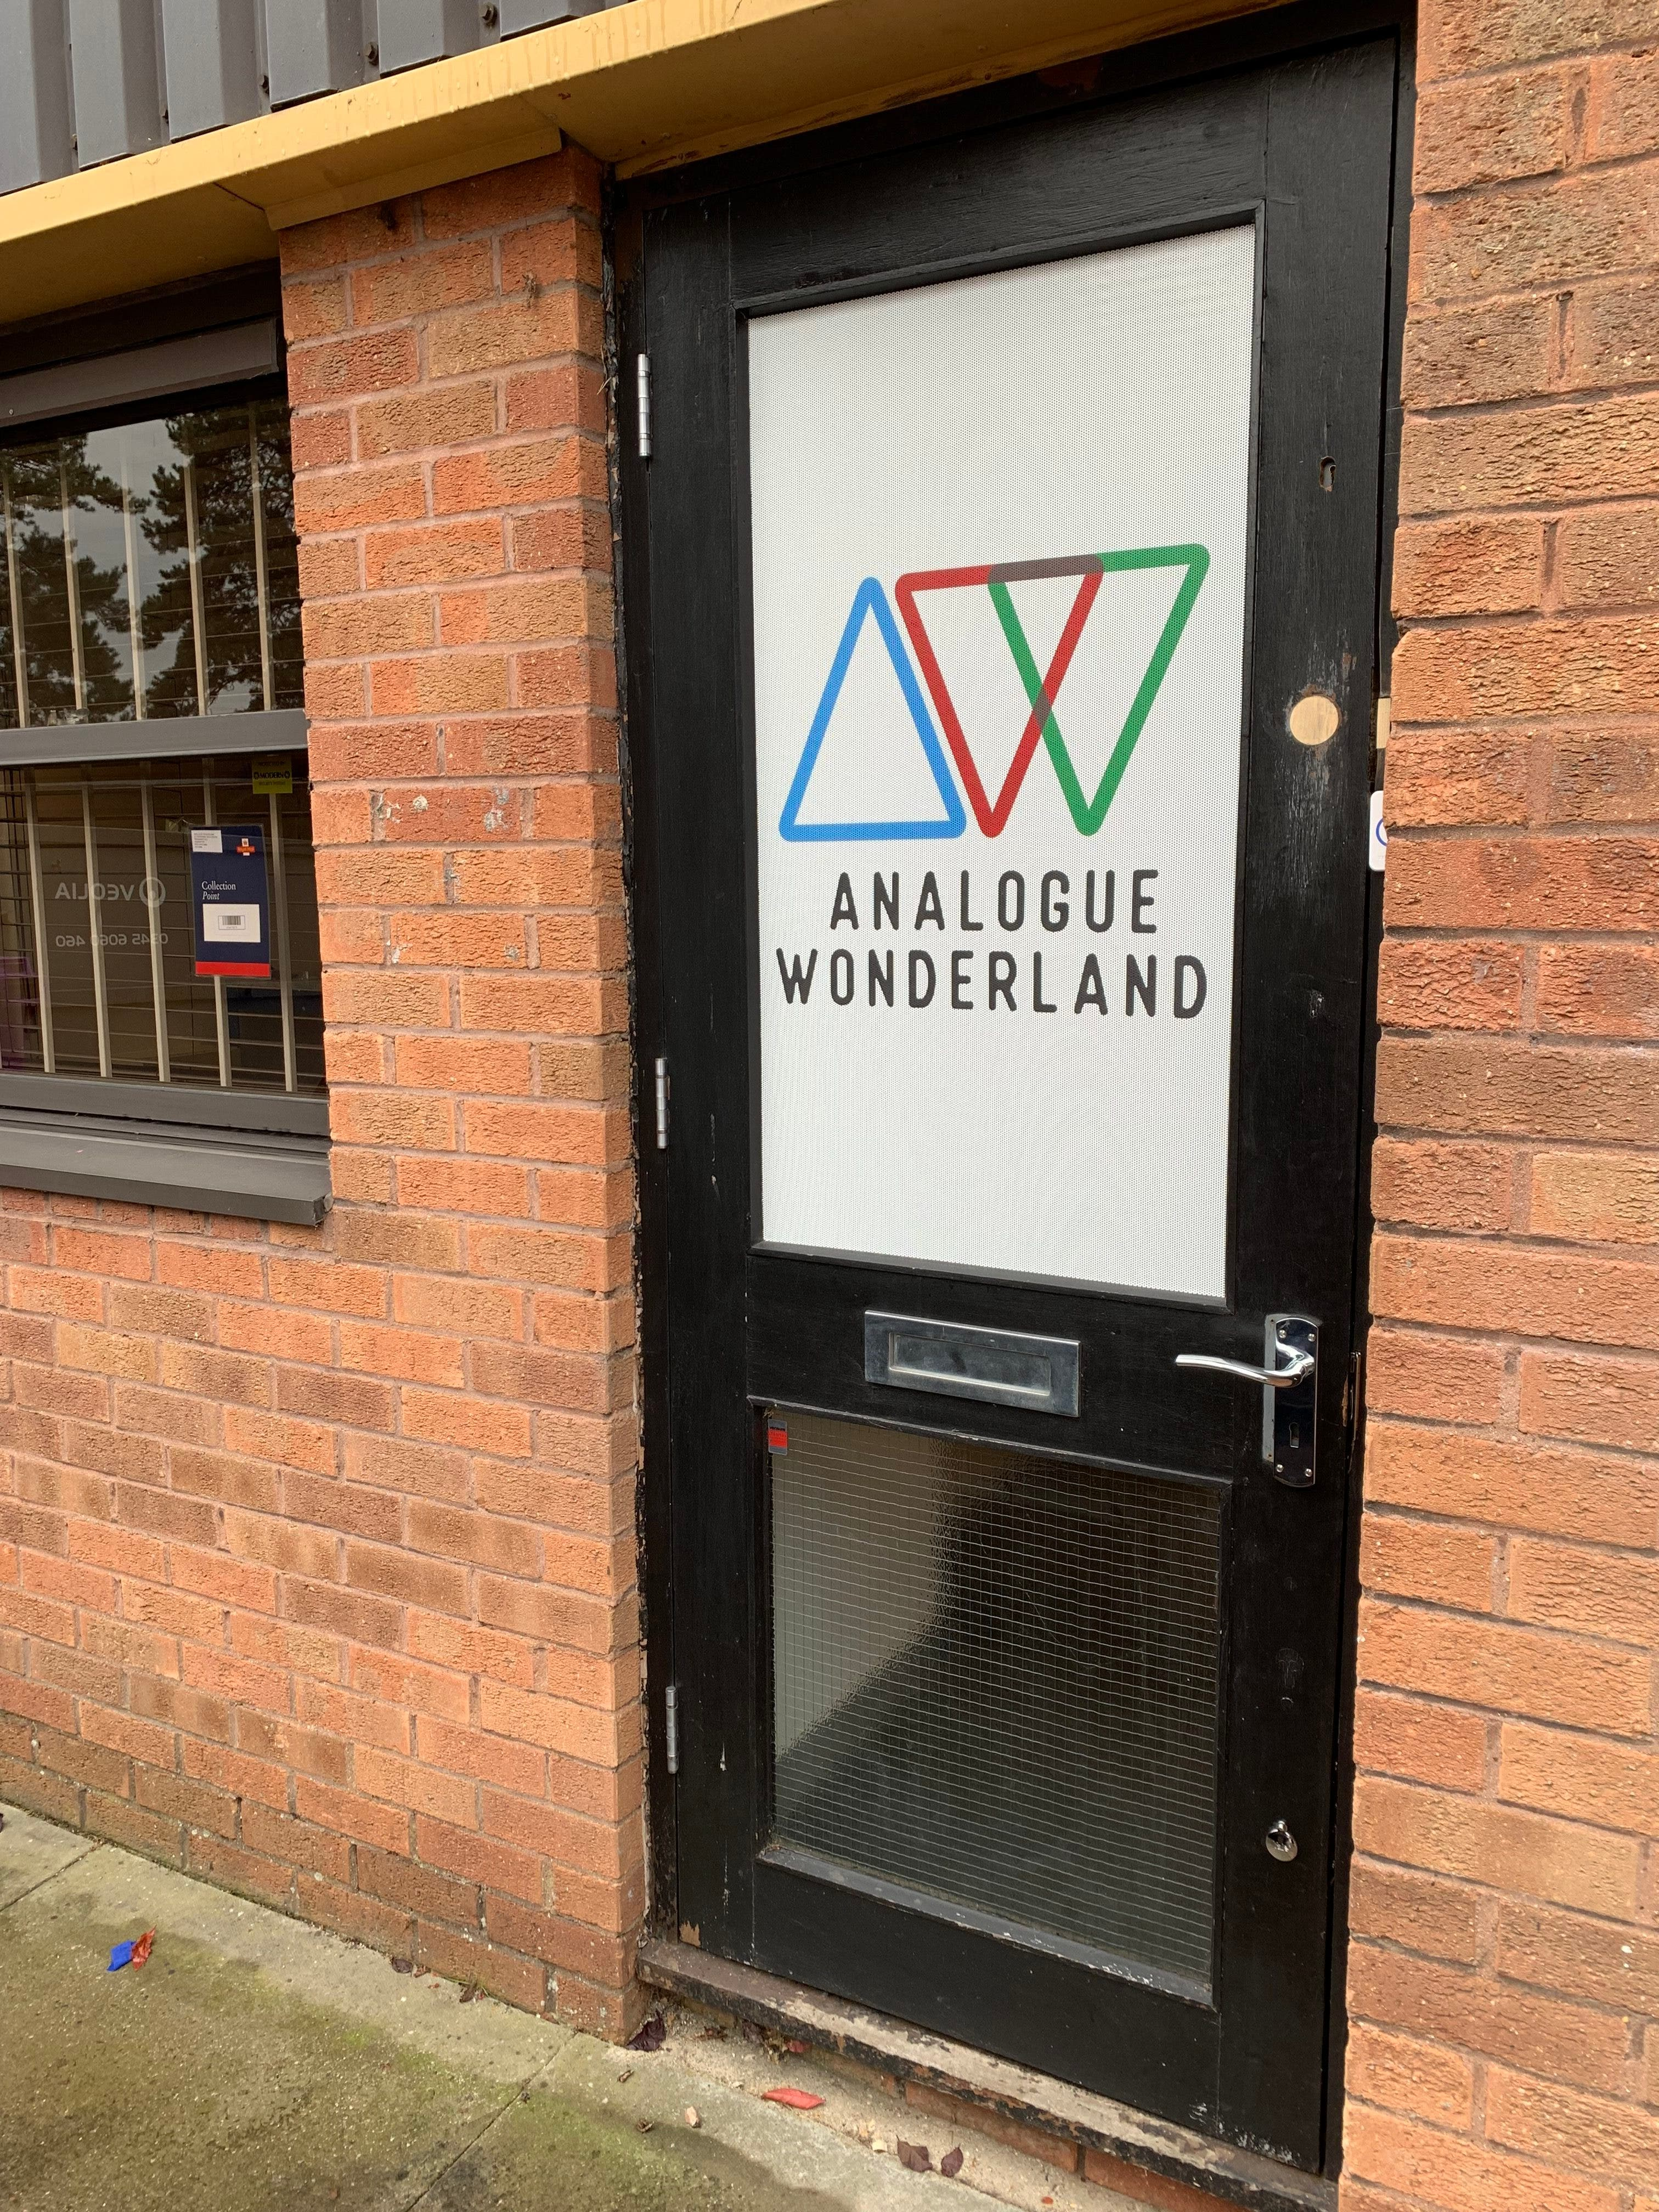 Analogue Wonderland Now Has One of the Few Female-Led Film Labs